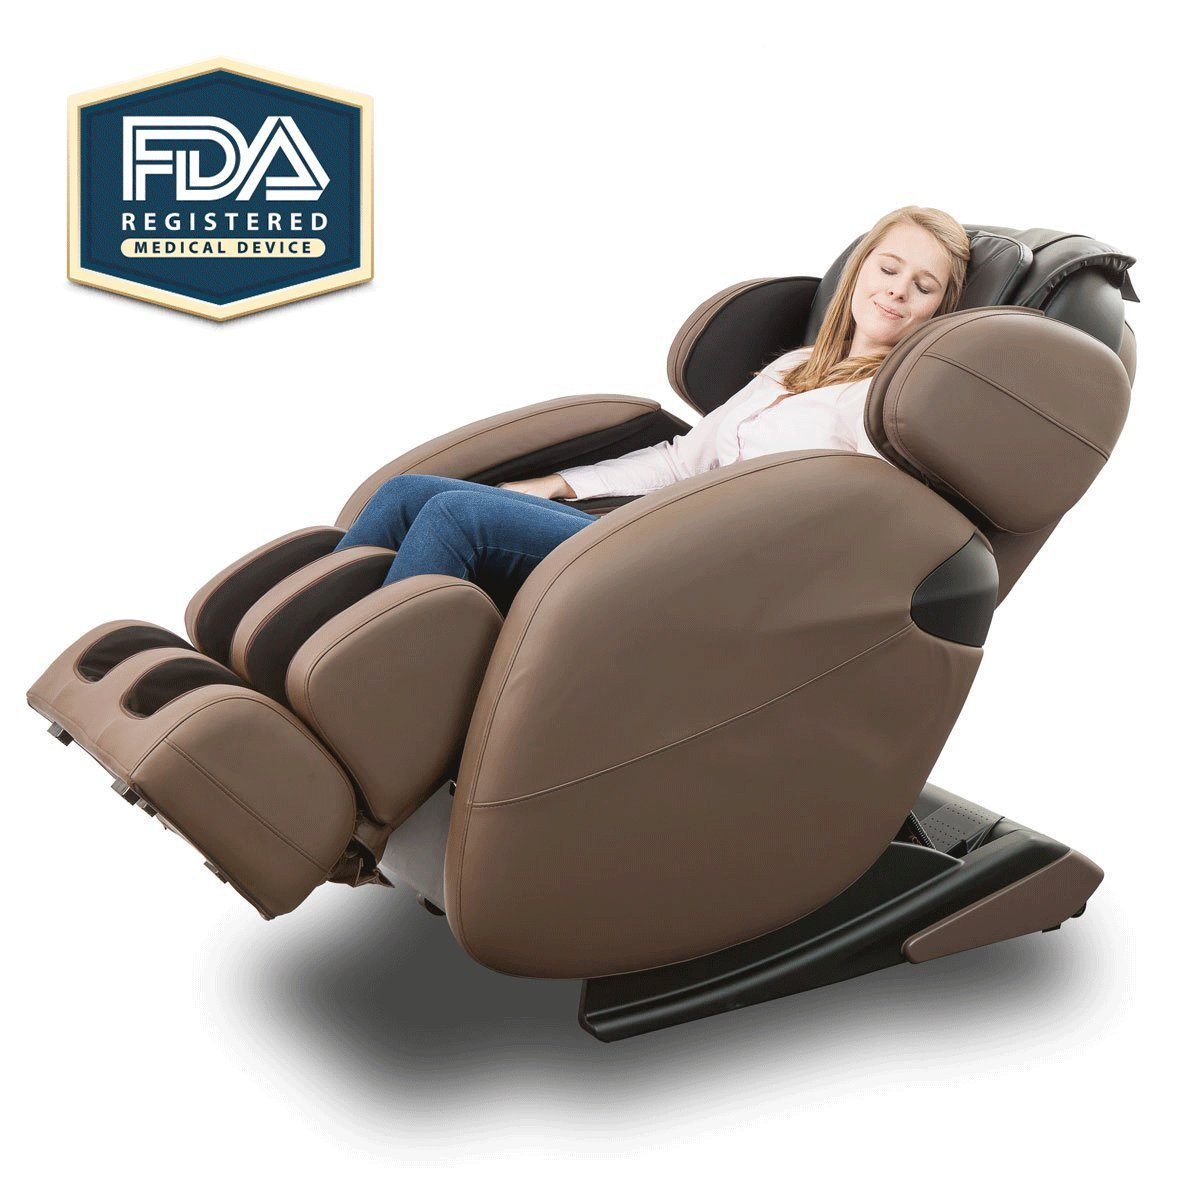 Kahuna massage chair lm6800 fda approved review for Therapeutic massage chair reviews